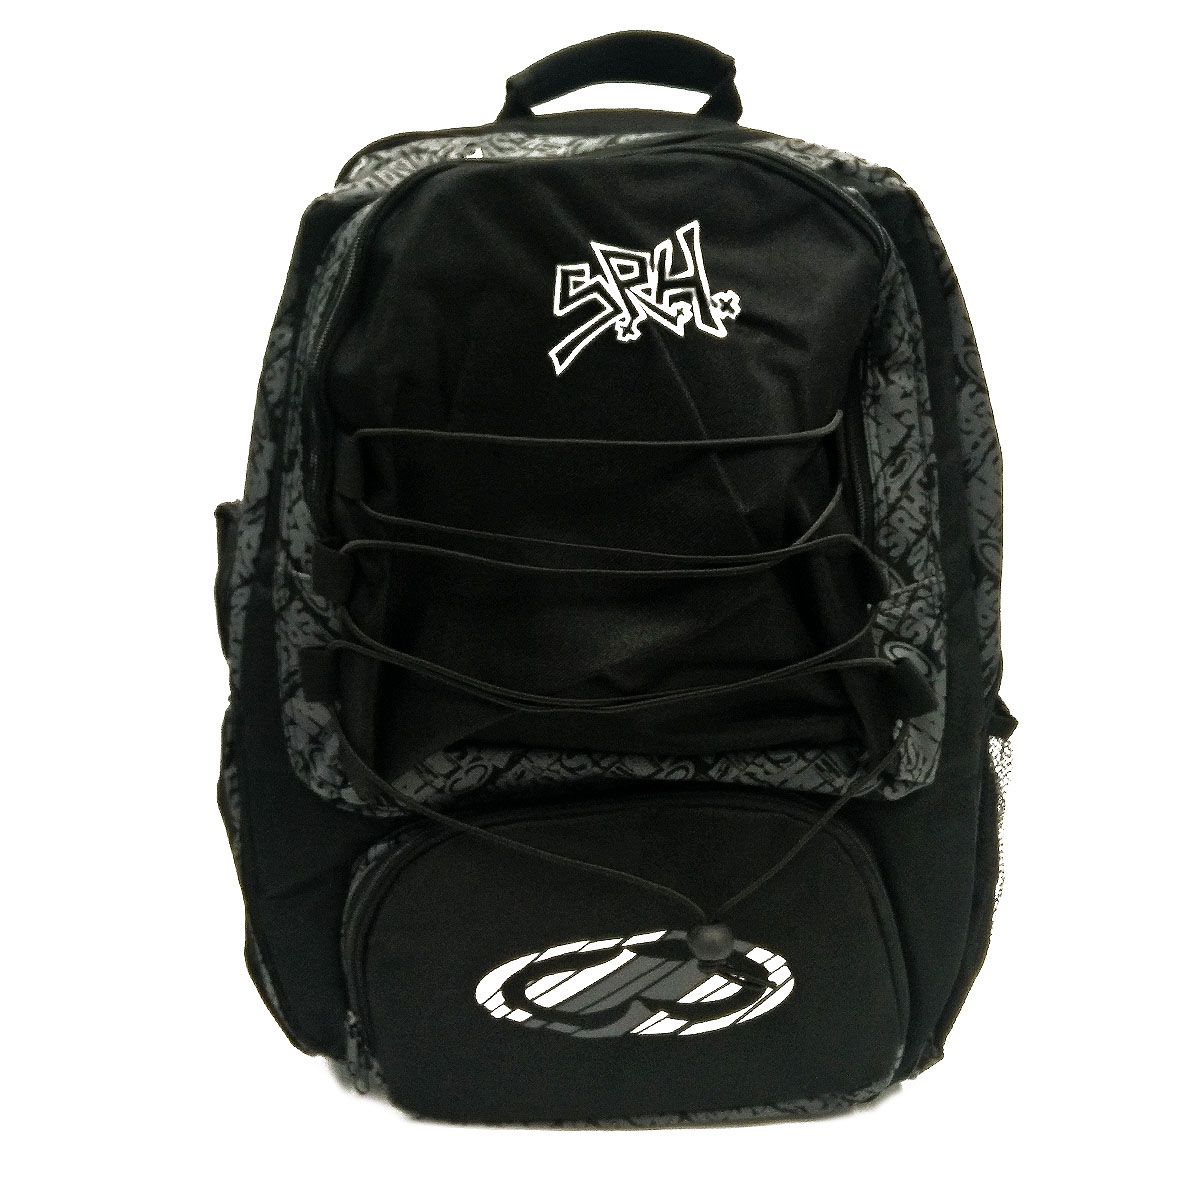 SRH Hercules Backpack Front